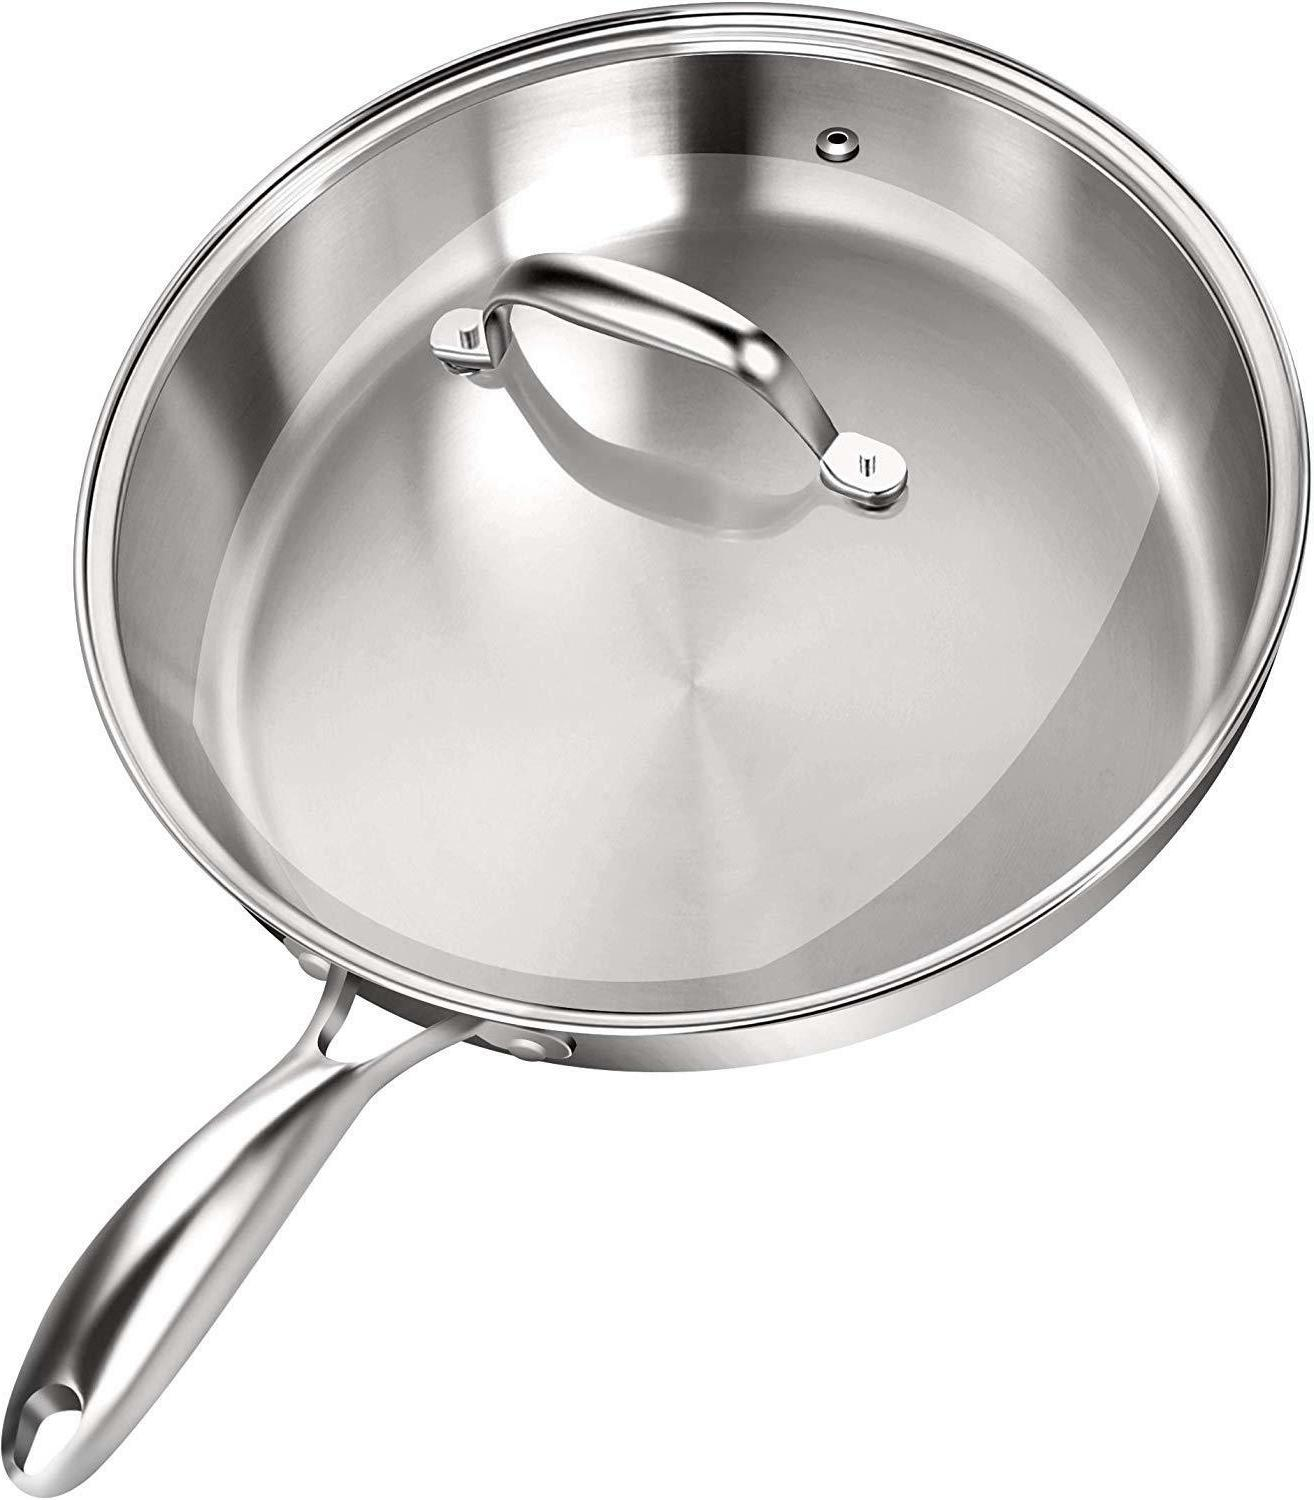 Stainless Steel With Lid Pan Non Cookware